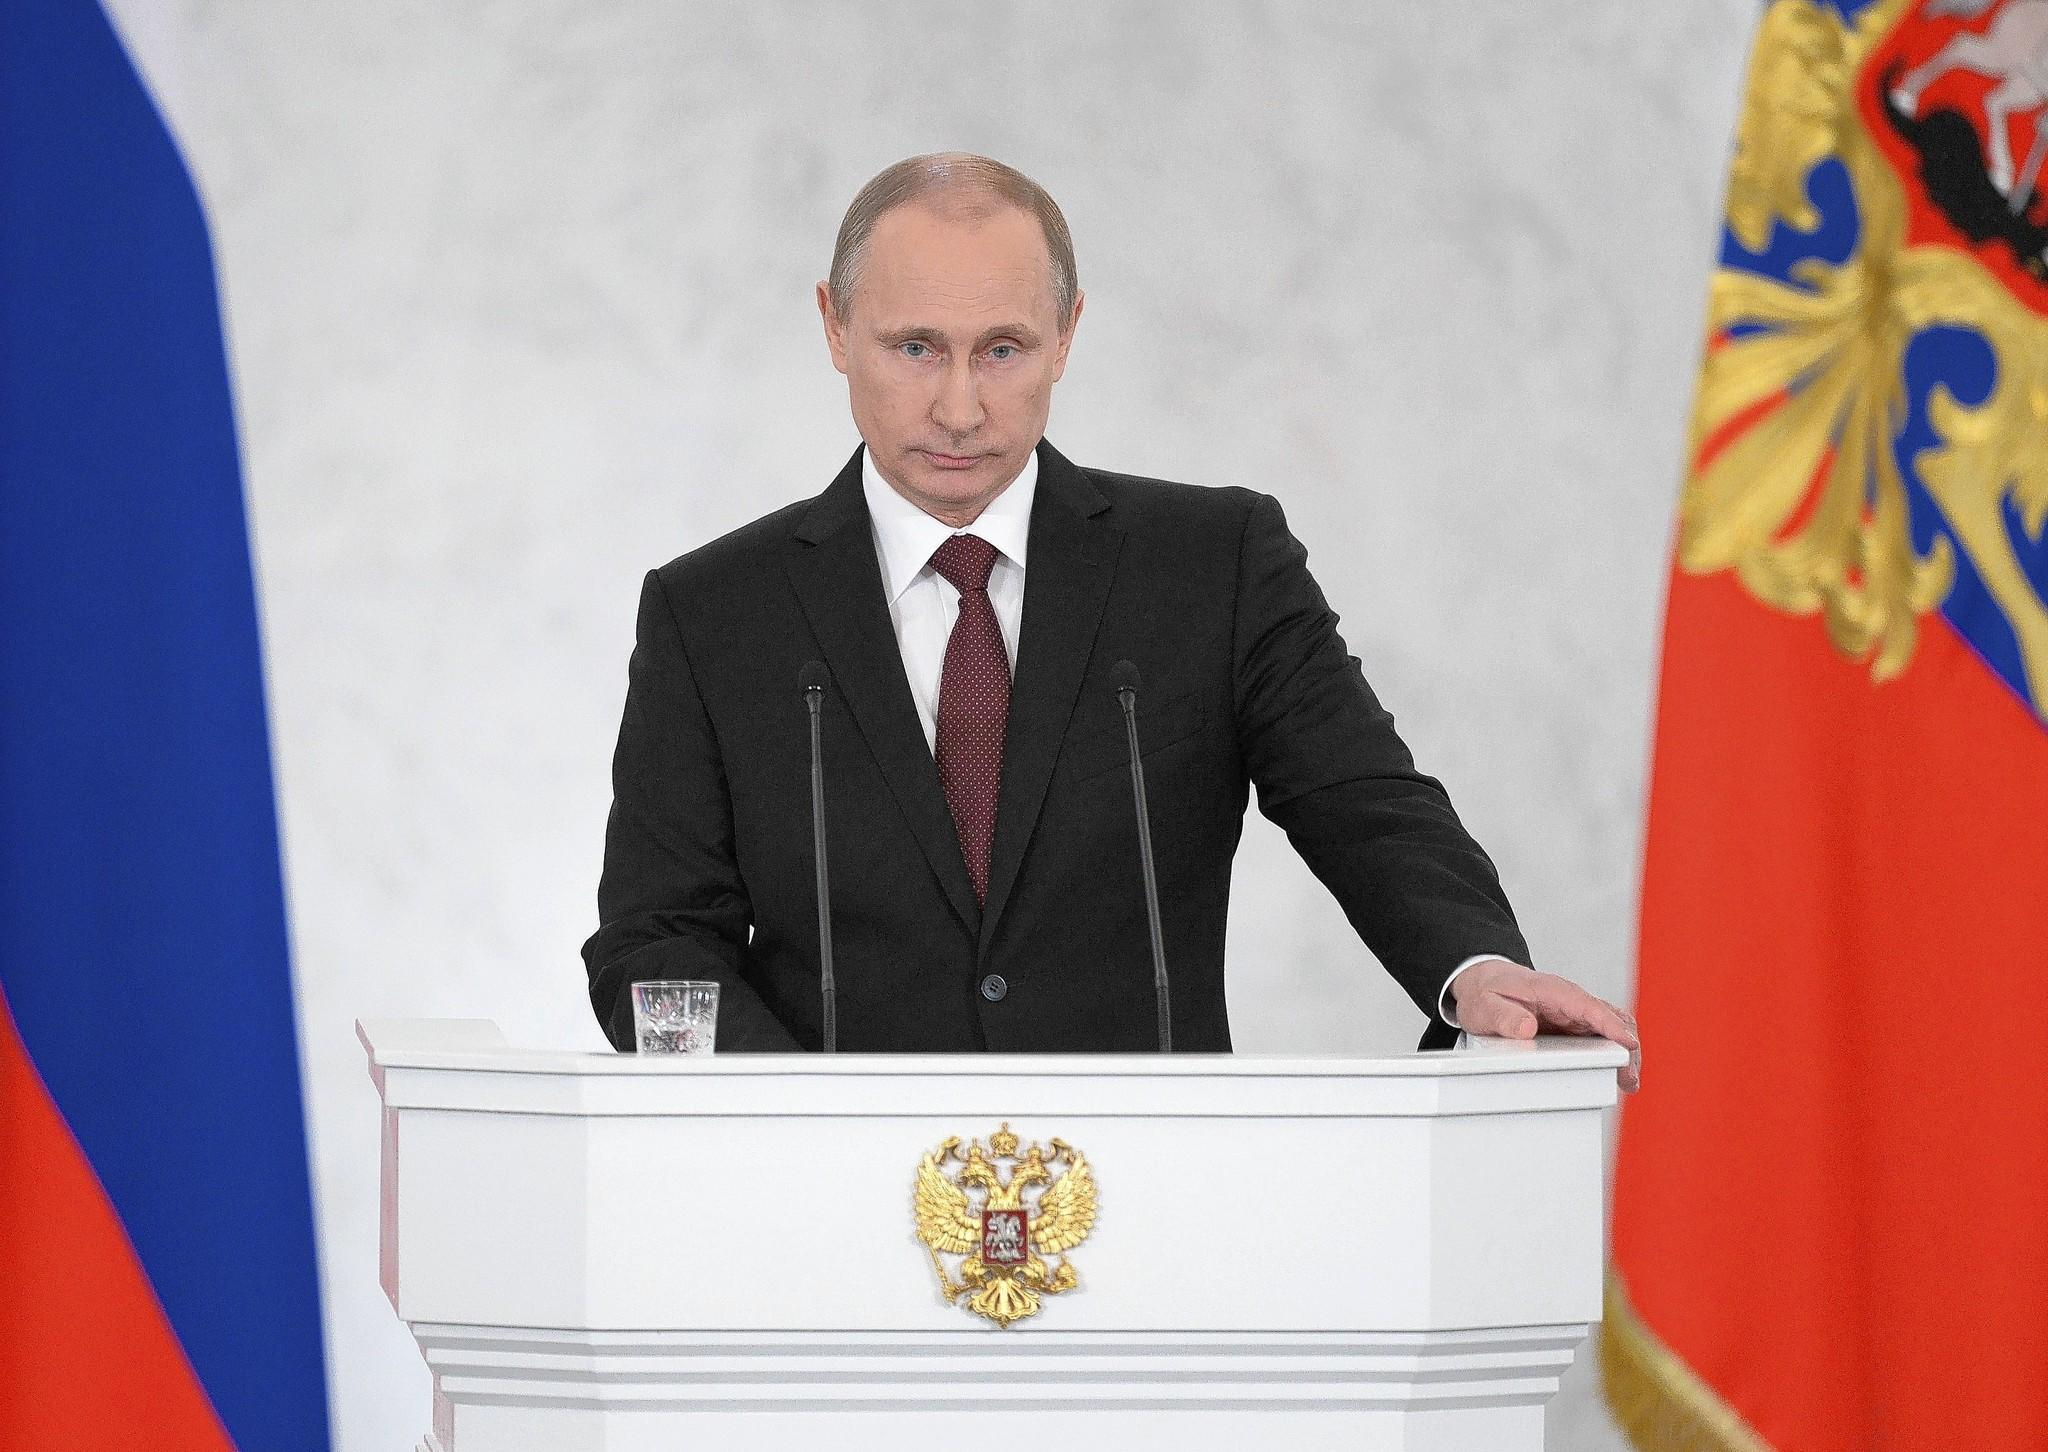 Vladimir Putin arrives to address a joint session of Russian parliament on Crimea in the Kremlin in Moscow on March 18.